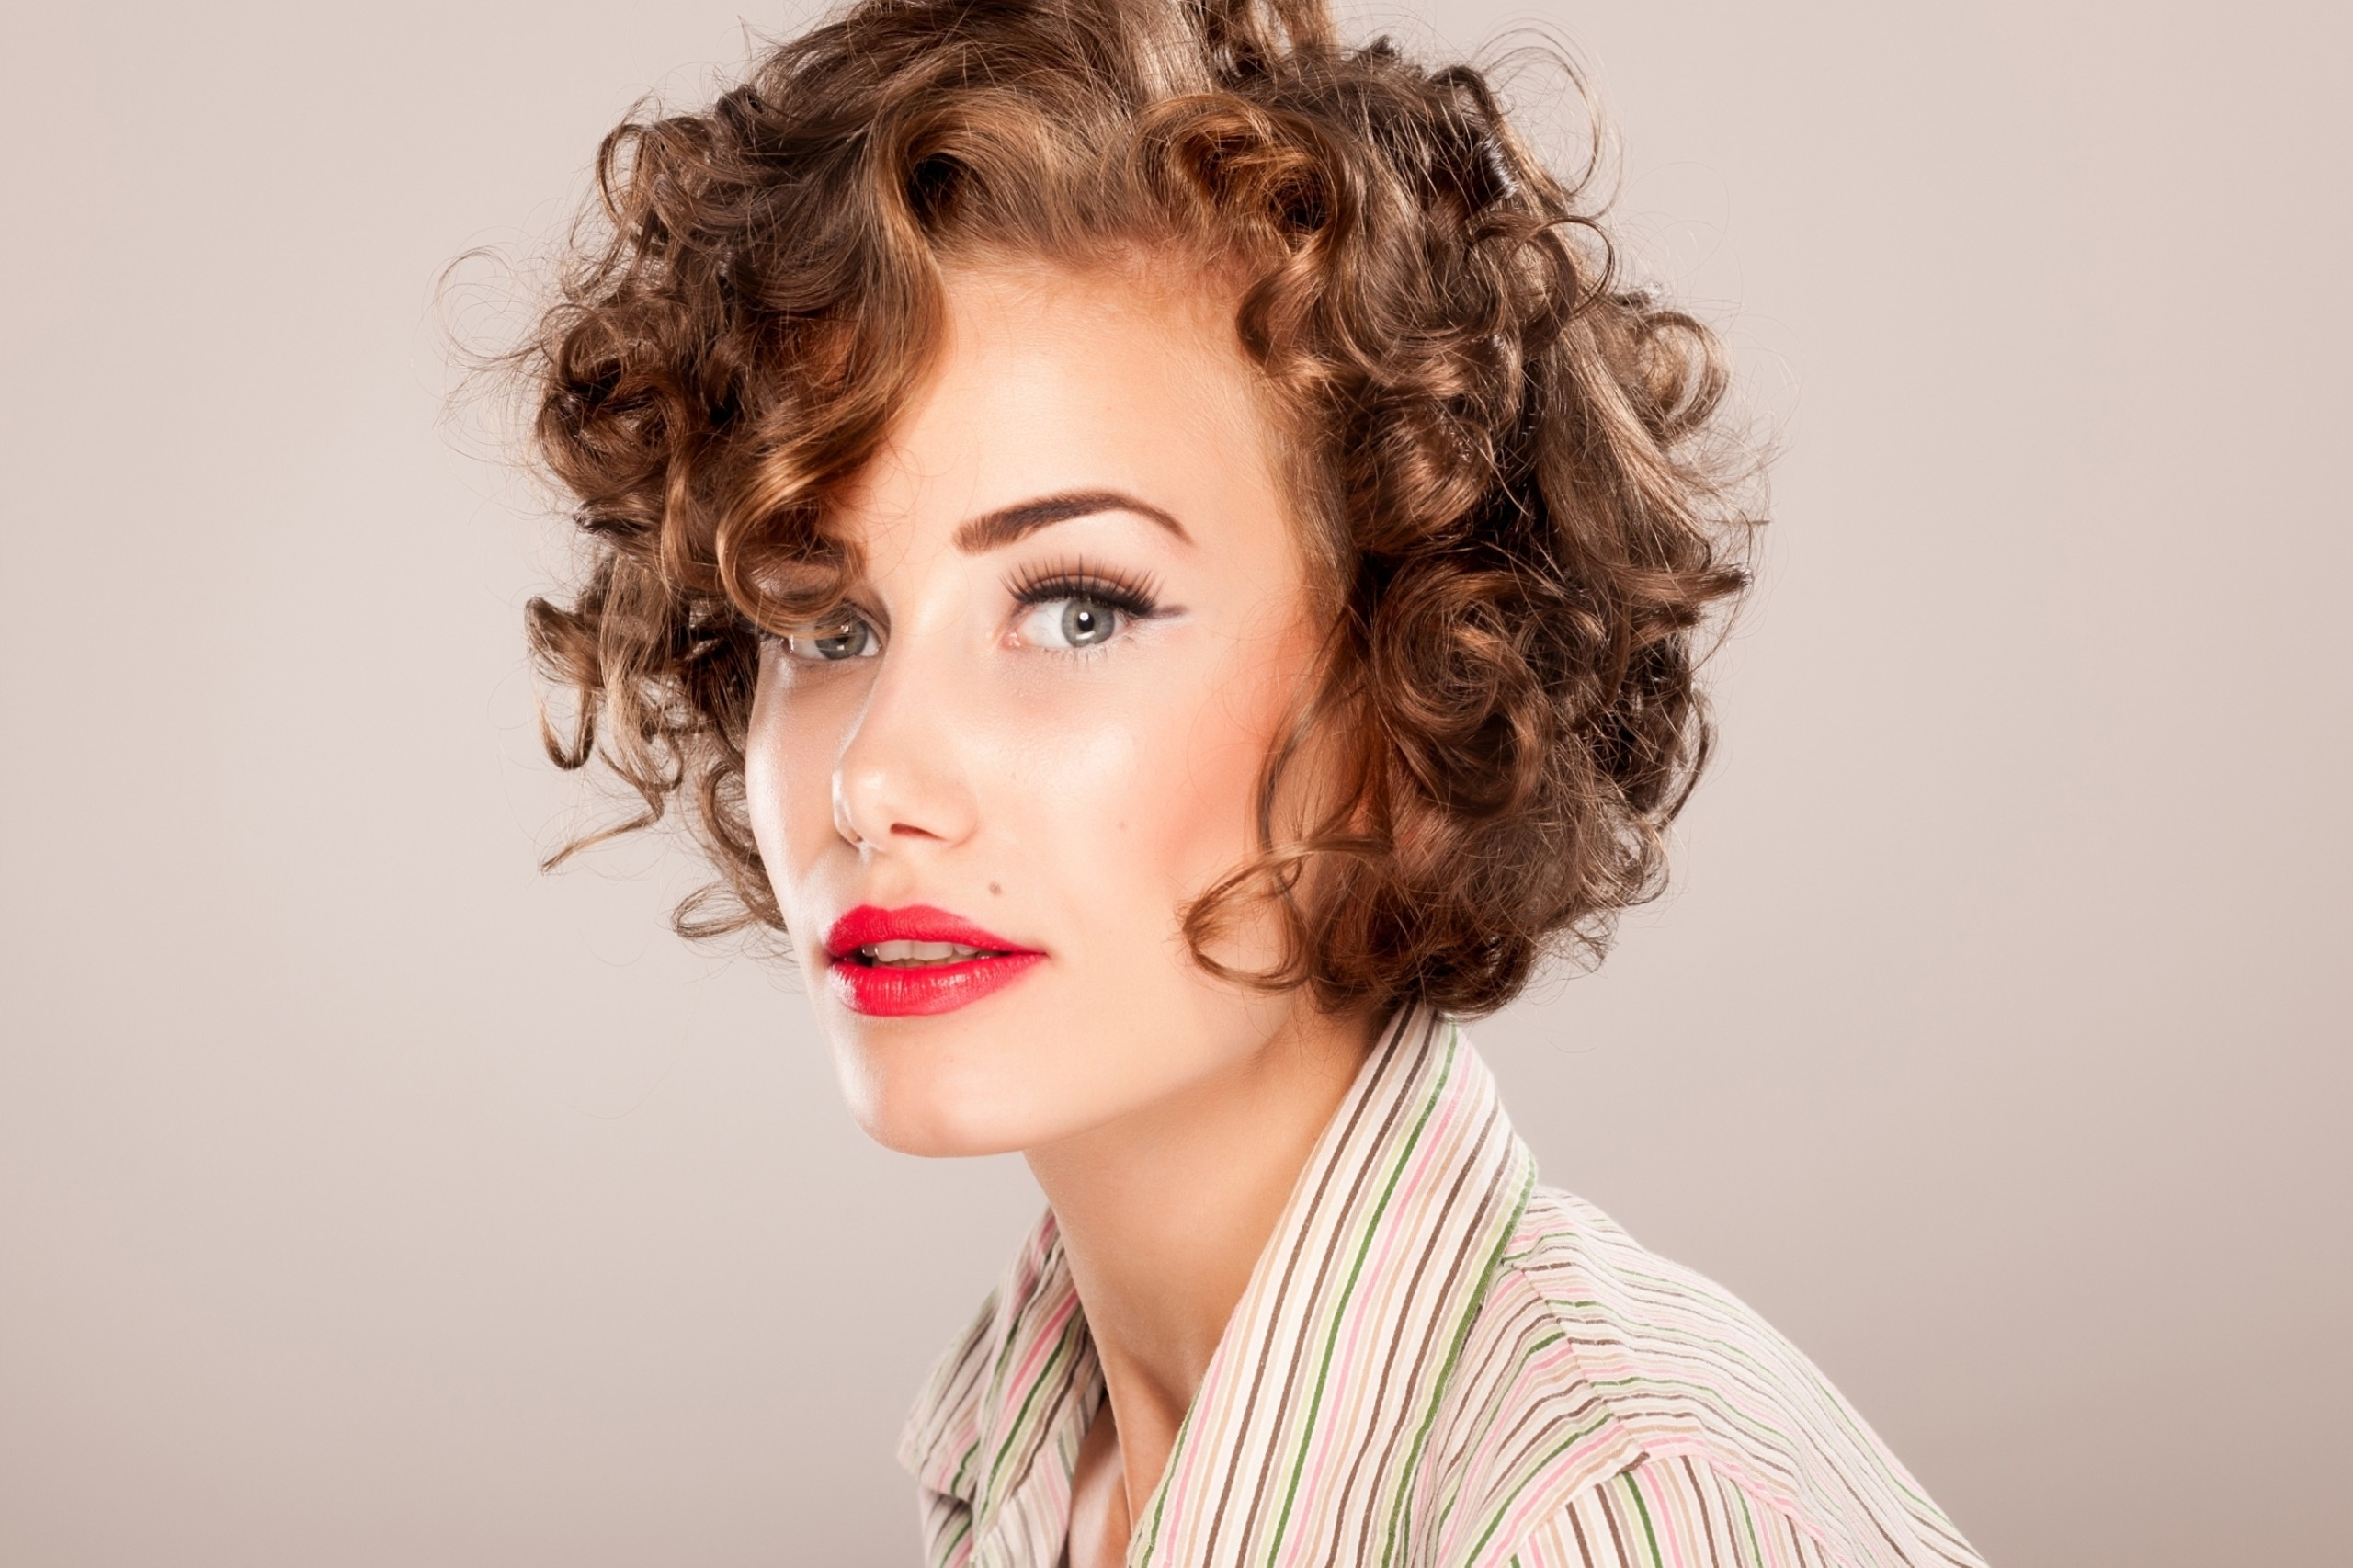 2018 Curly Short Haircuts – Short And Cuts Hairstyles In Hairstyles For Short Curly Fine Hair (View 9 of 25)